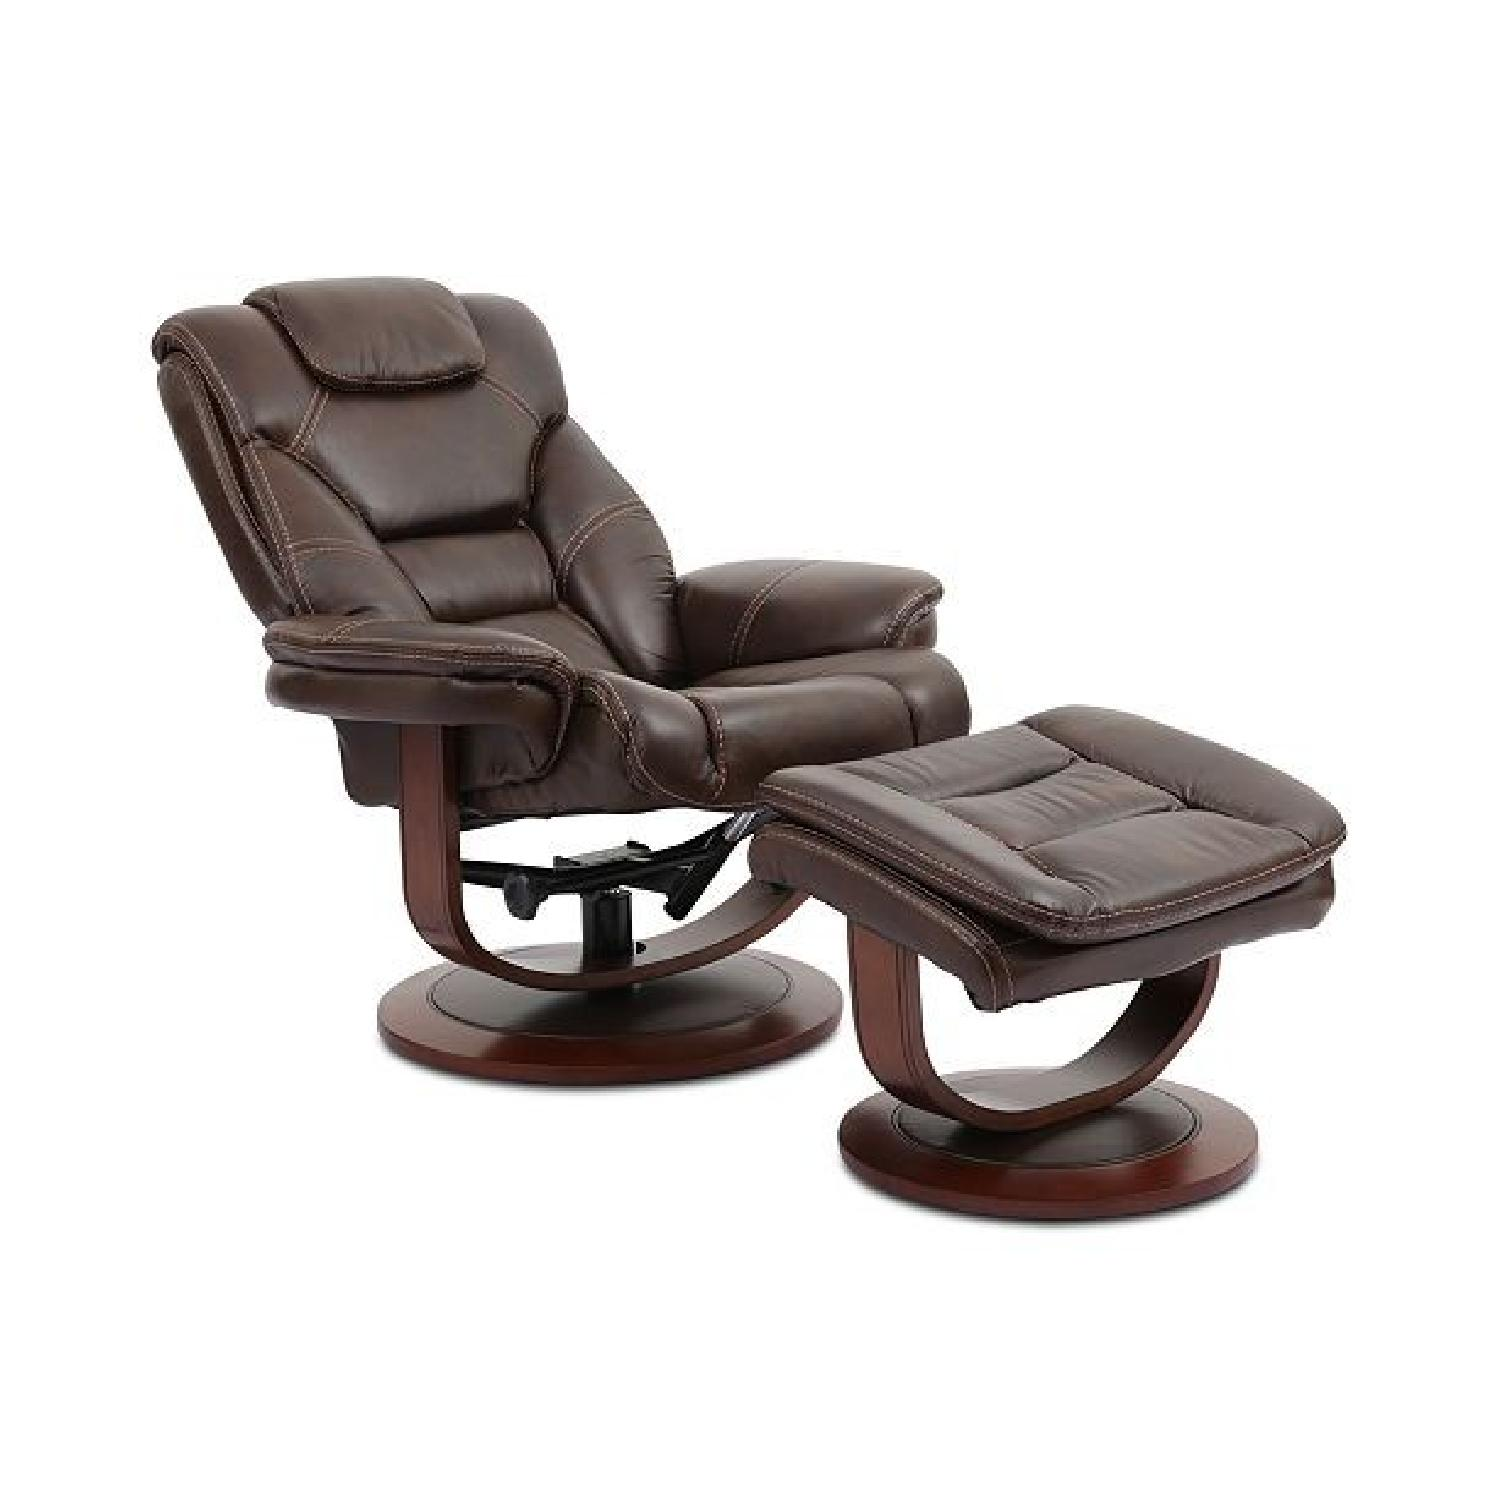 Macy's Leather Euro Chair & Ottoman - image-0